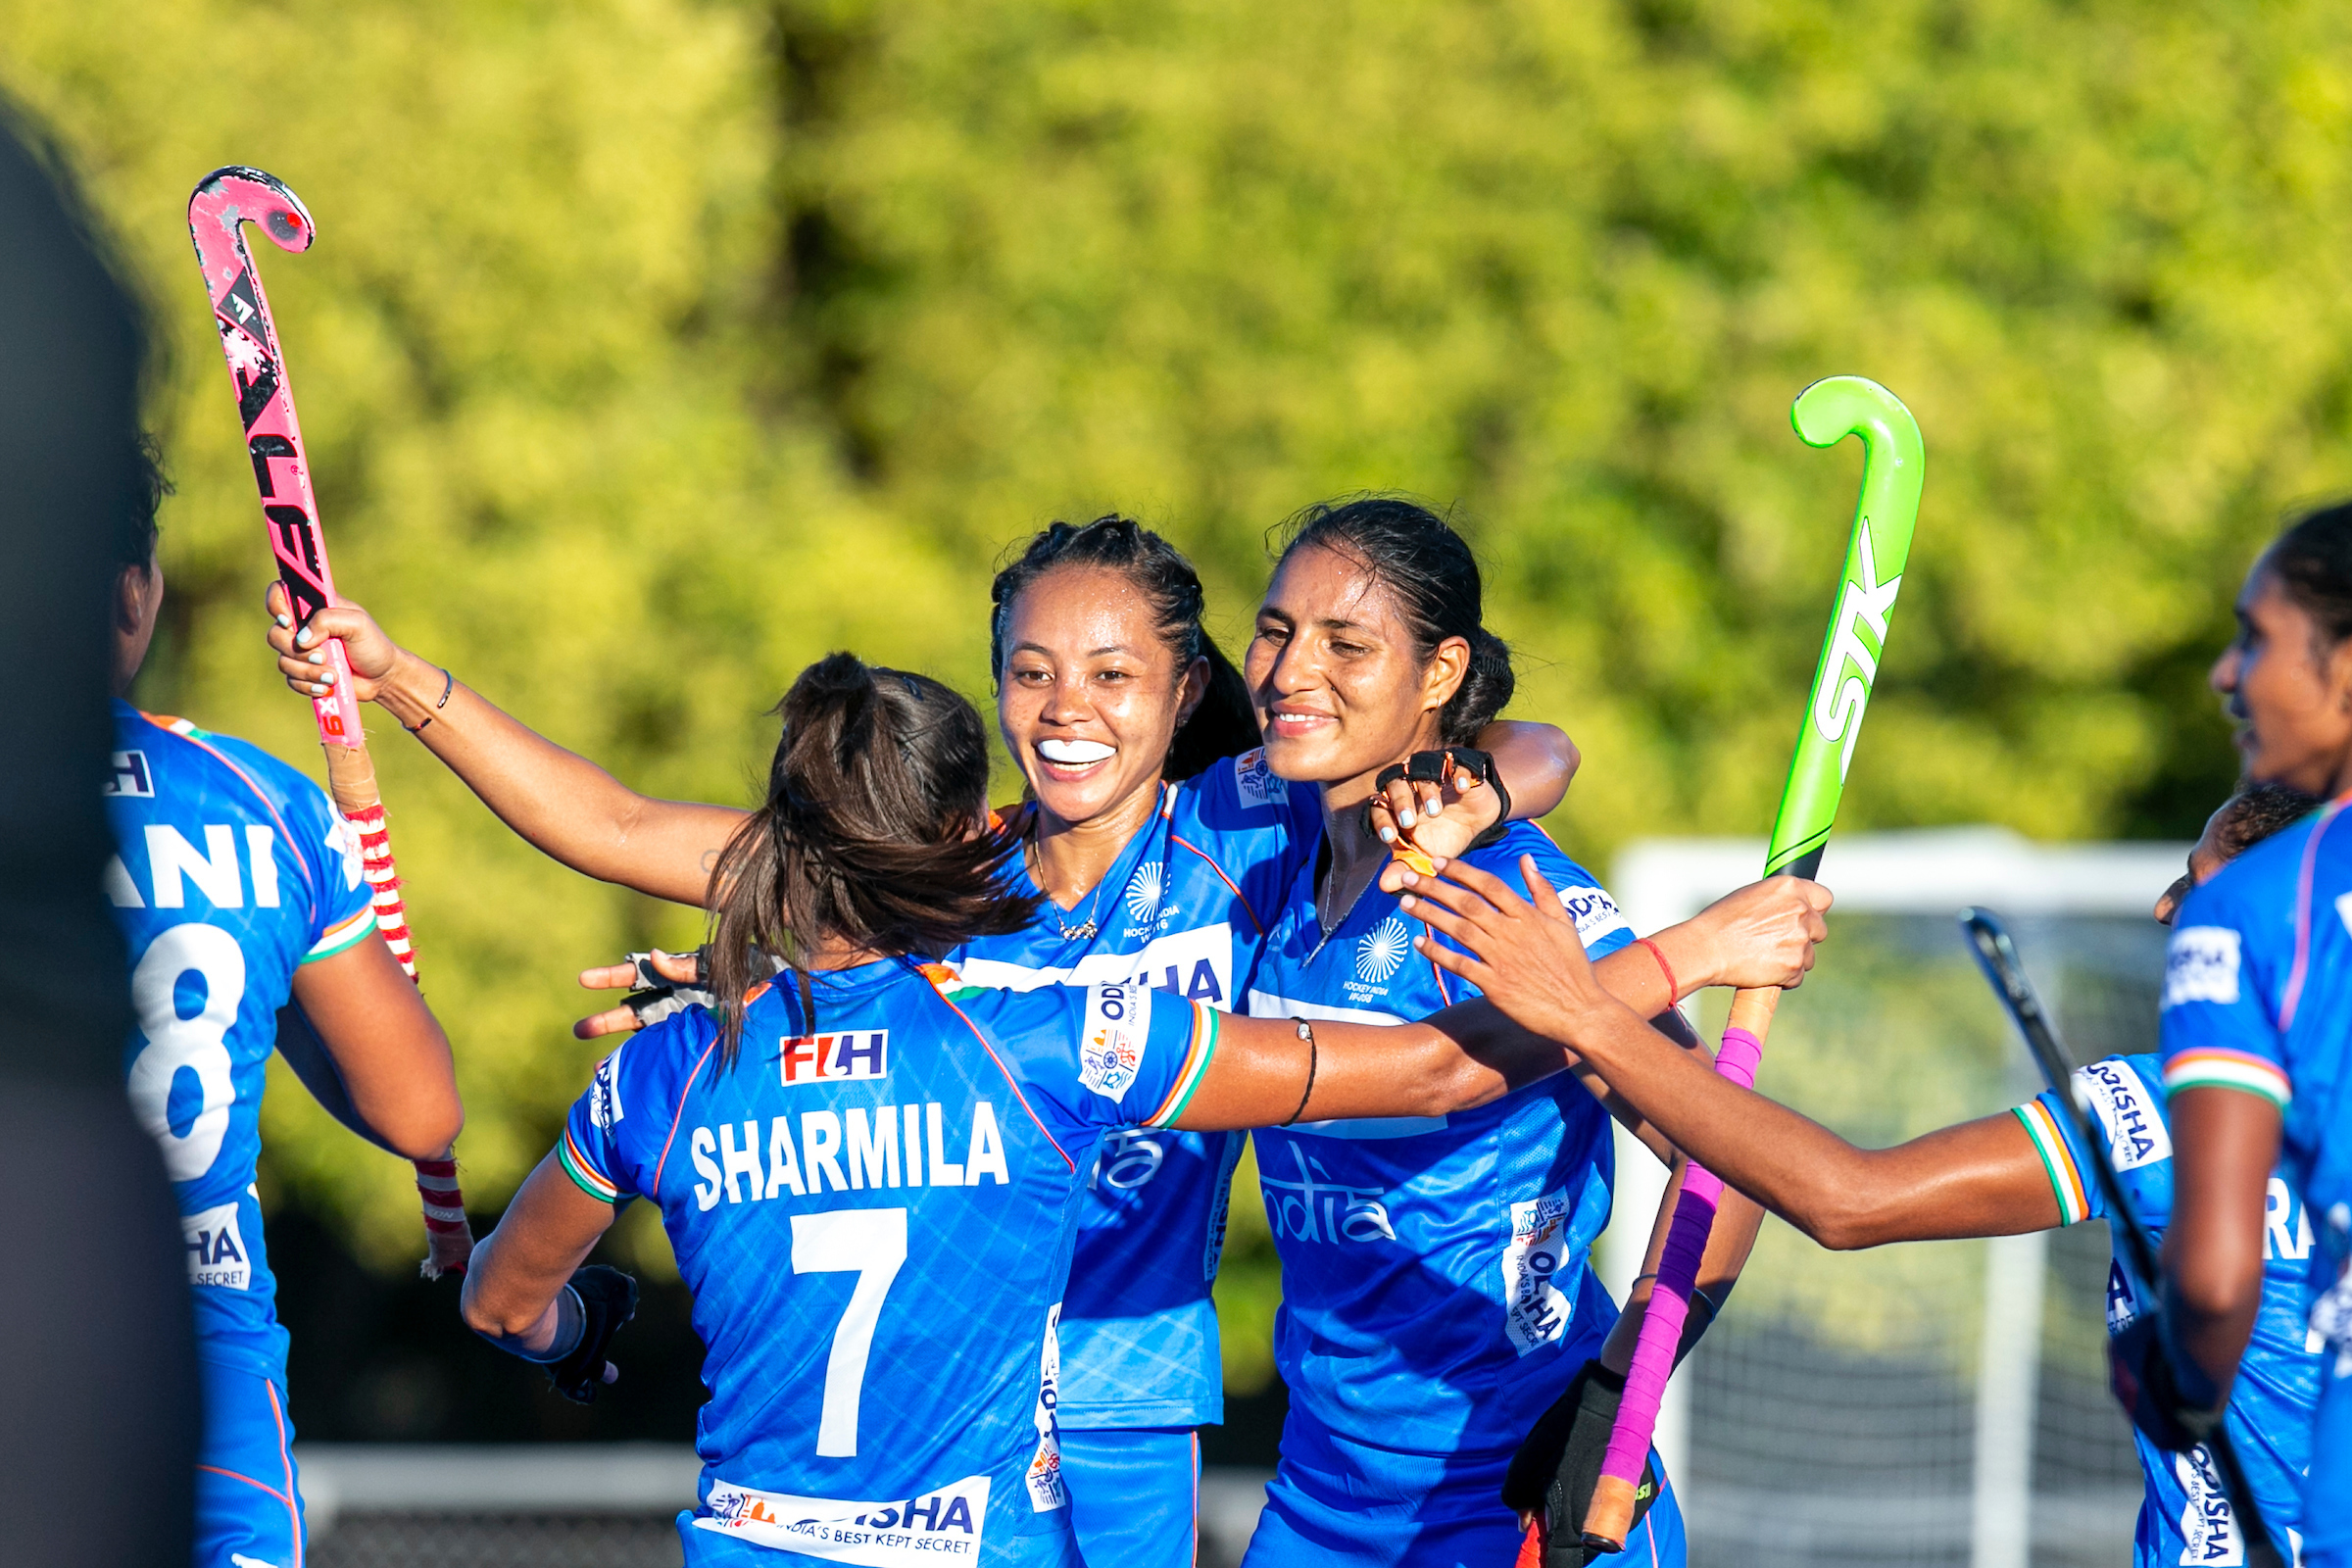 Experienced Argentina 'B' beat Indian Women's Hockey team 3-2 in a thriller